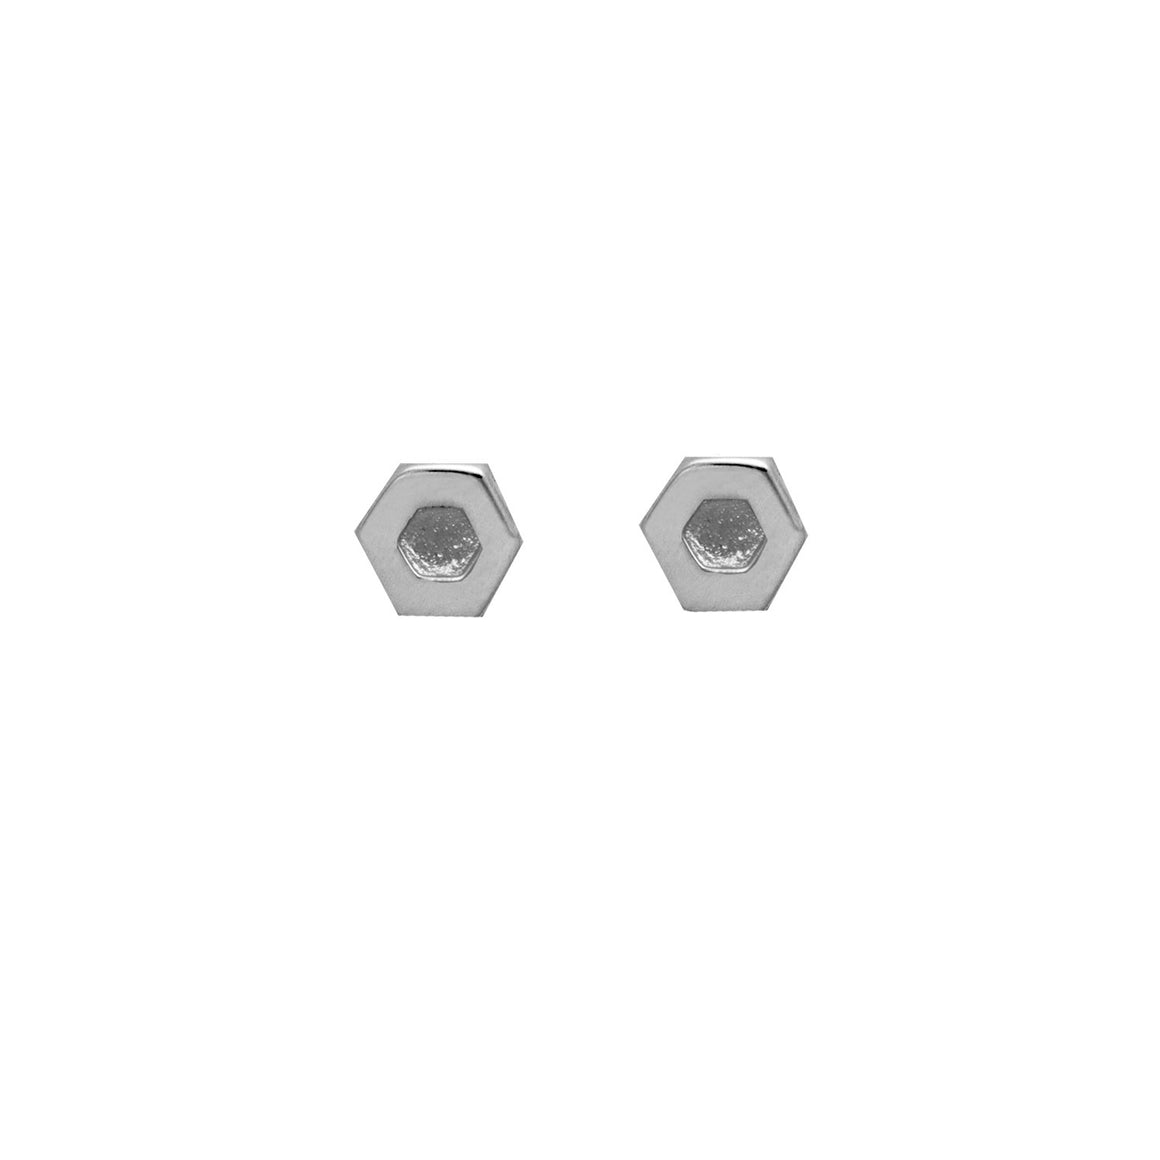 Hexagon Earrings in sterling silver EOxLH